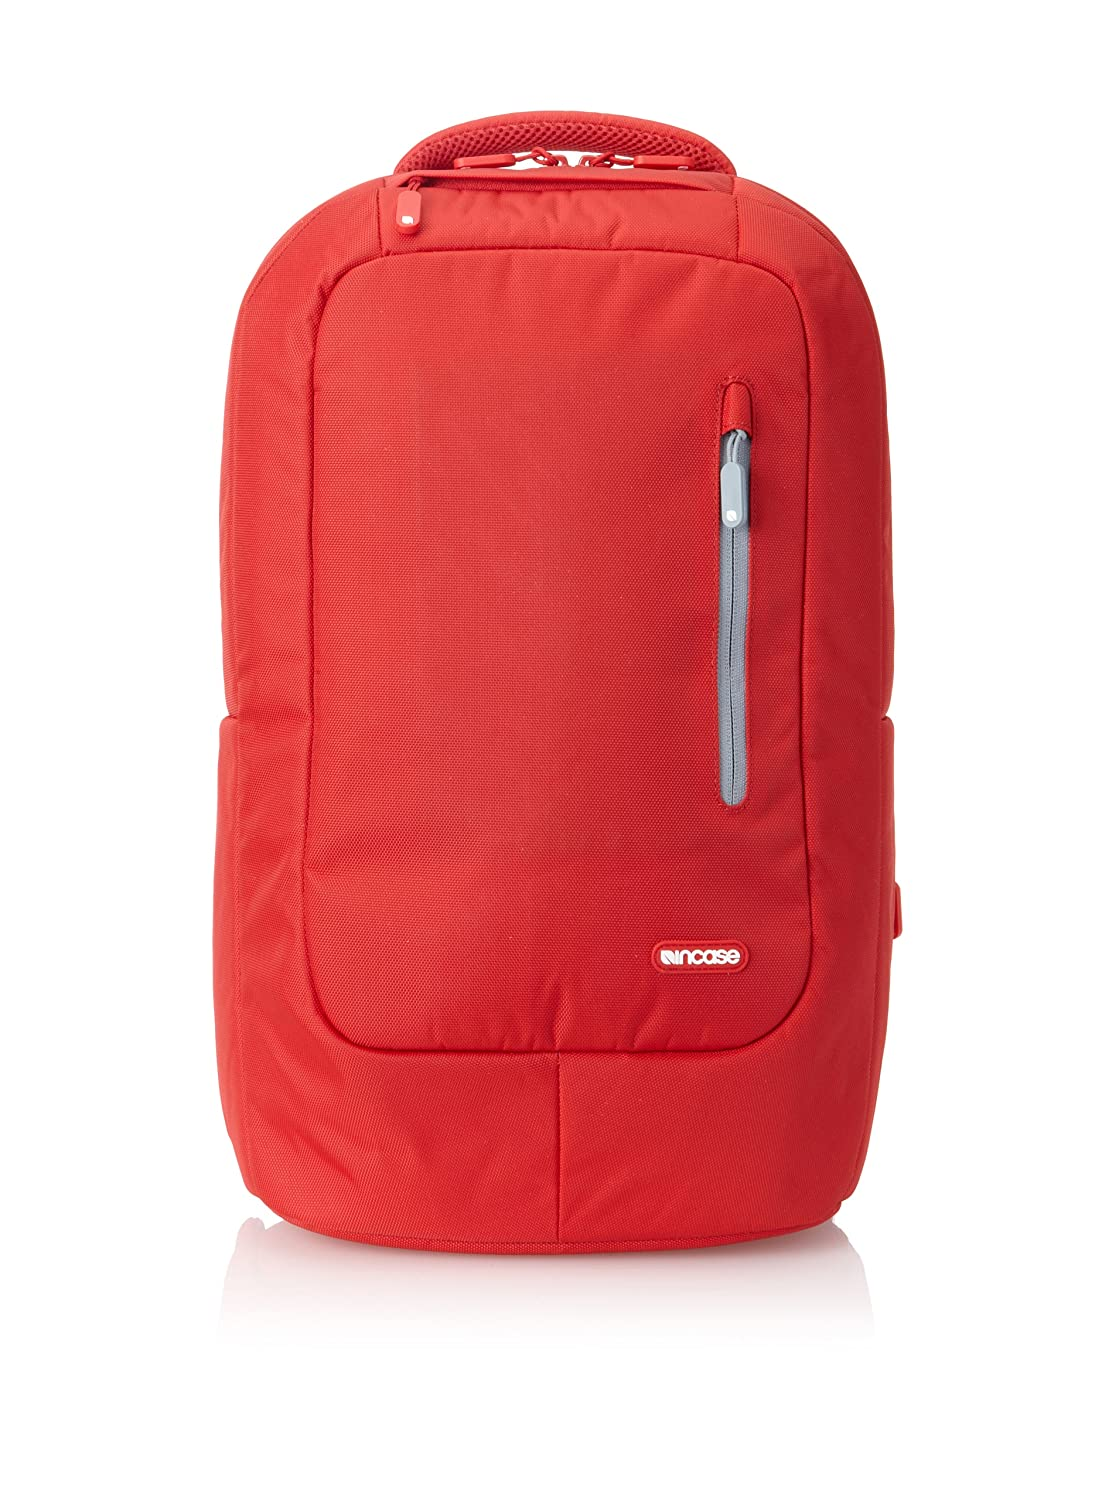 timeless design 73c89 7d0c4 Incase Compact Backpack for 15 Inch Laptop (Pompien Red/Lead) CL55361